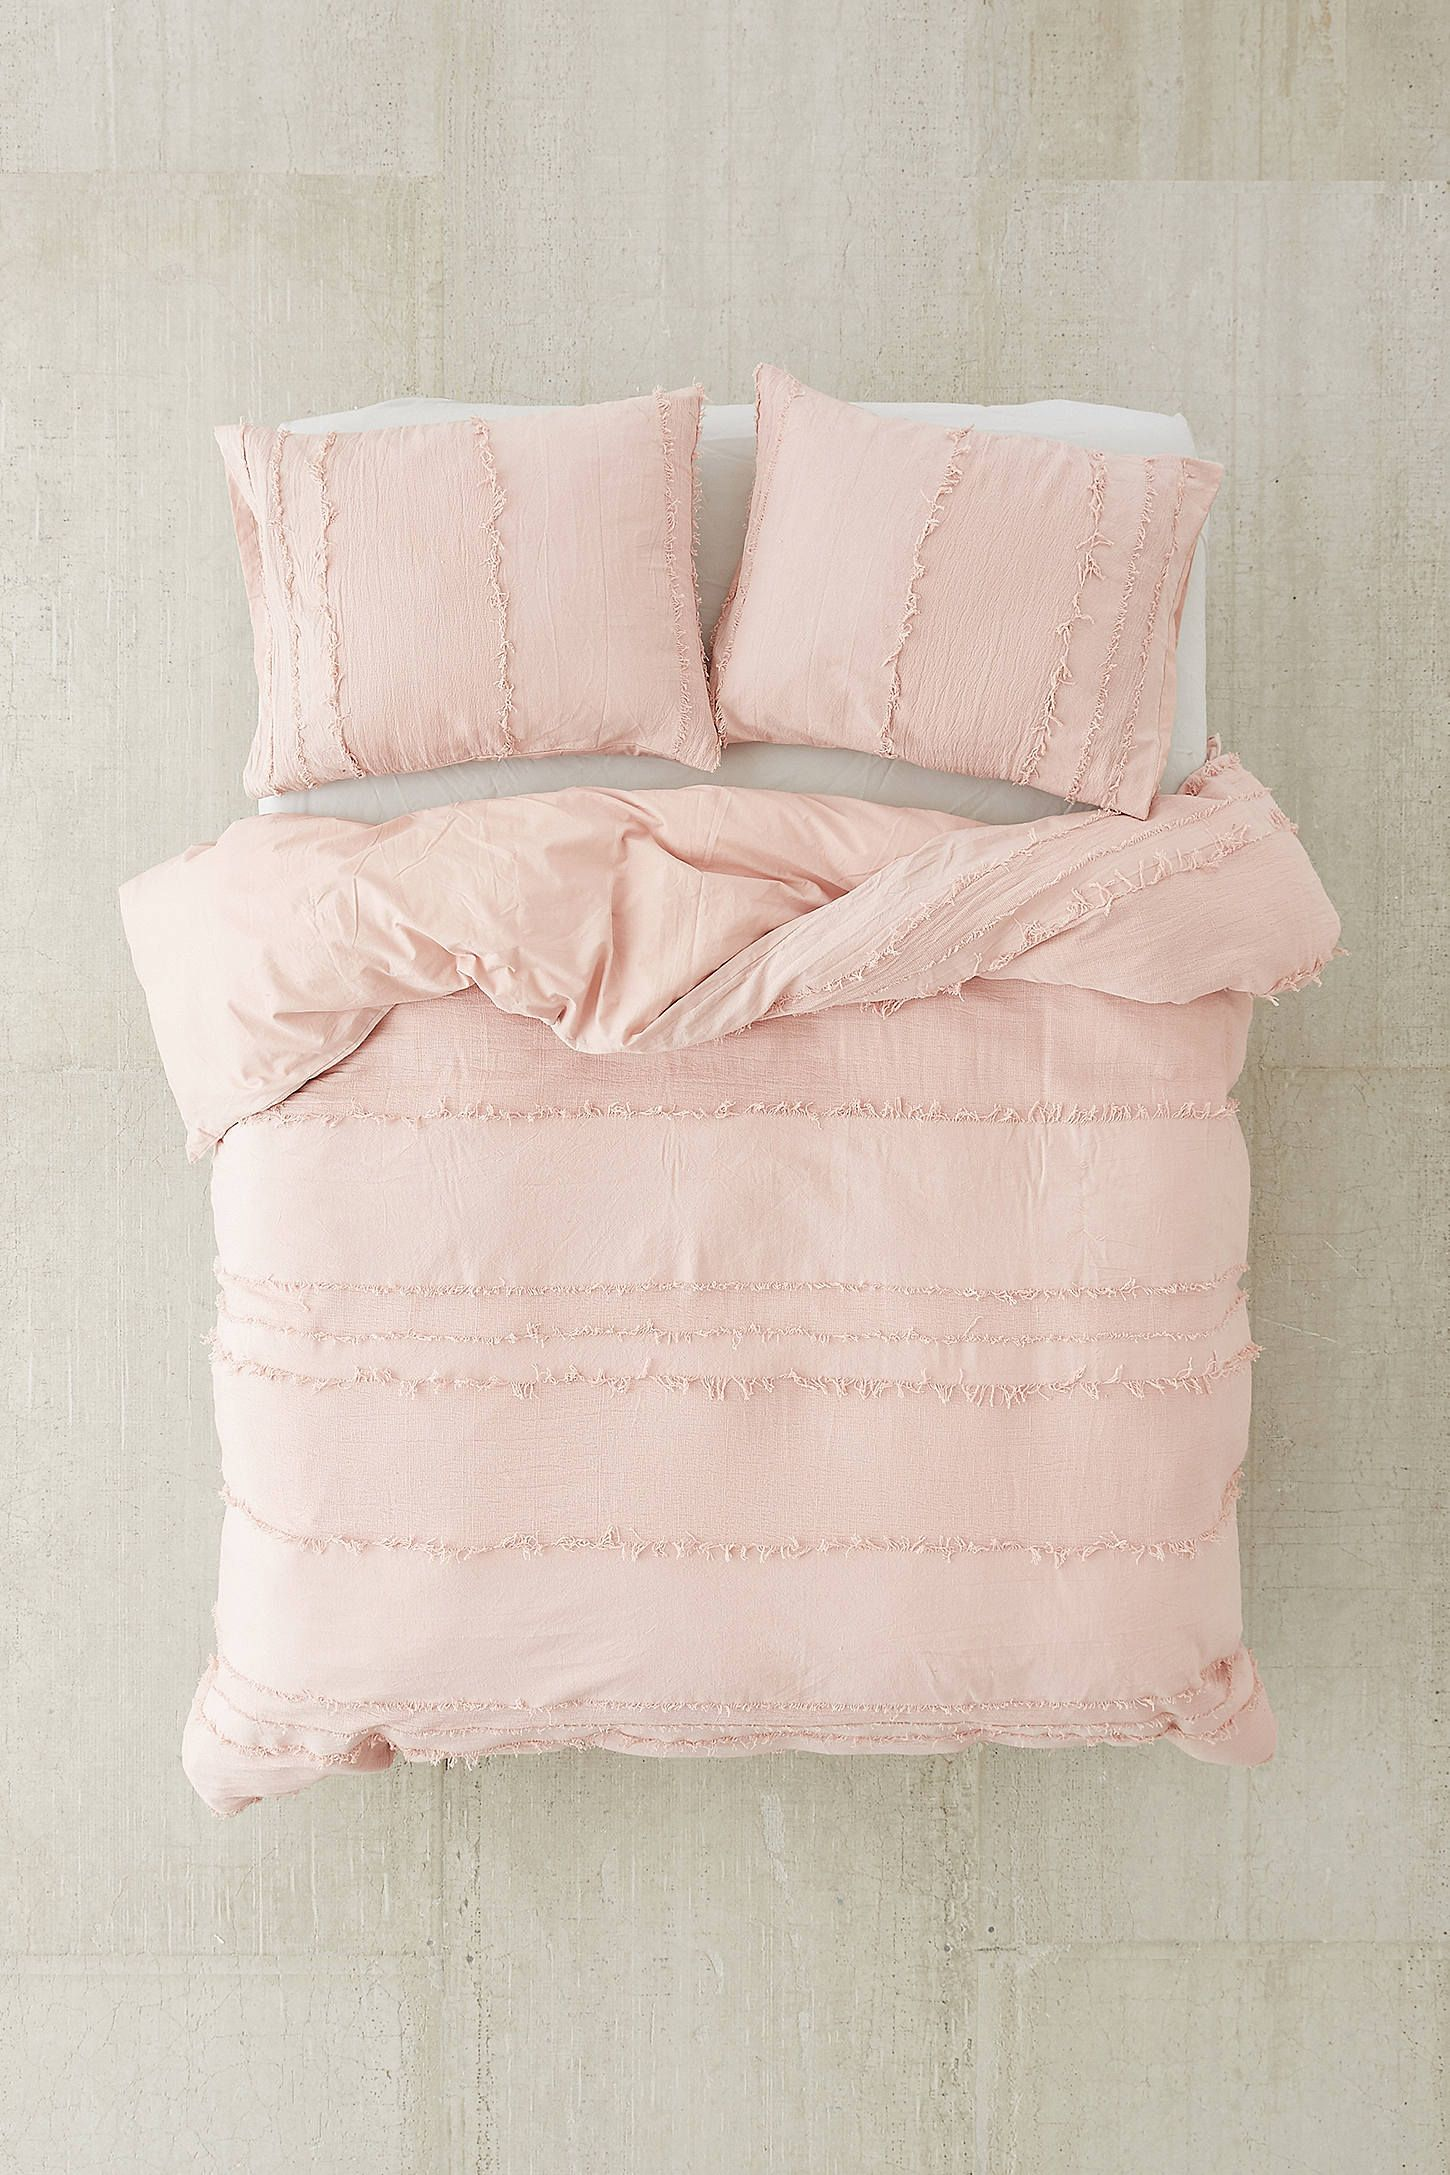 Willow Fringe Duvet Cover Urban outfitters bedding